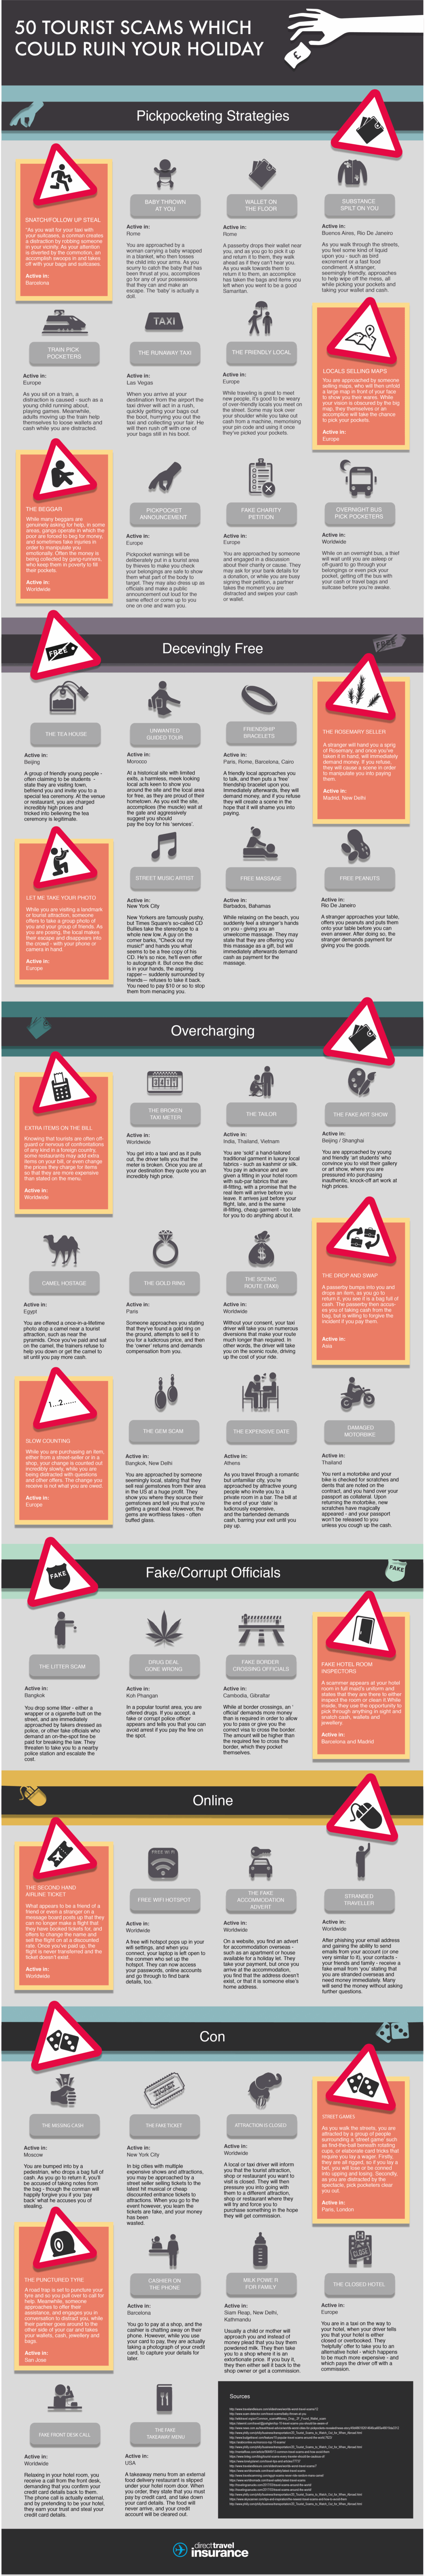 https://www.direct-travel.co.uk/content/infographic/DTI-infographic-holiday-scams.png